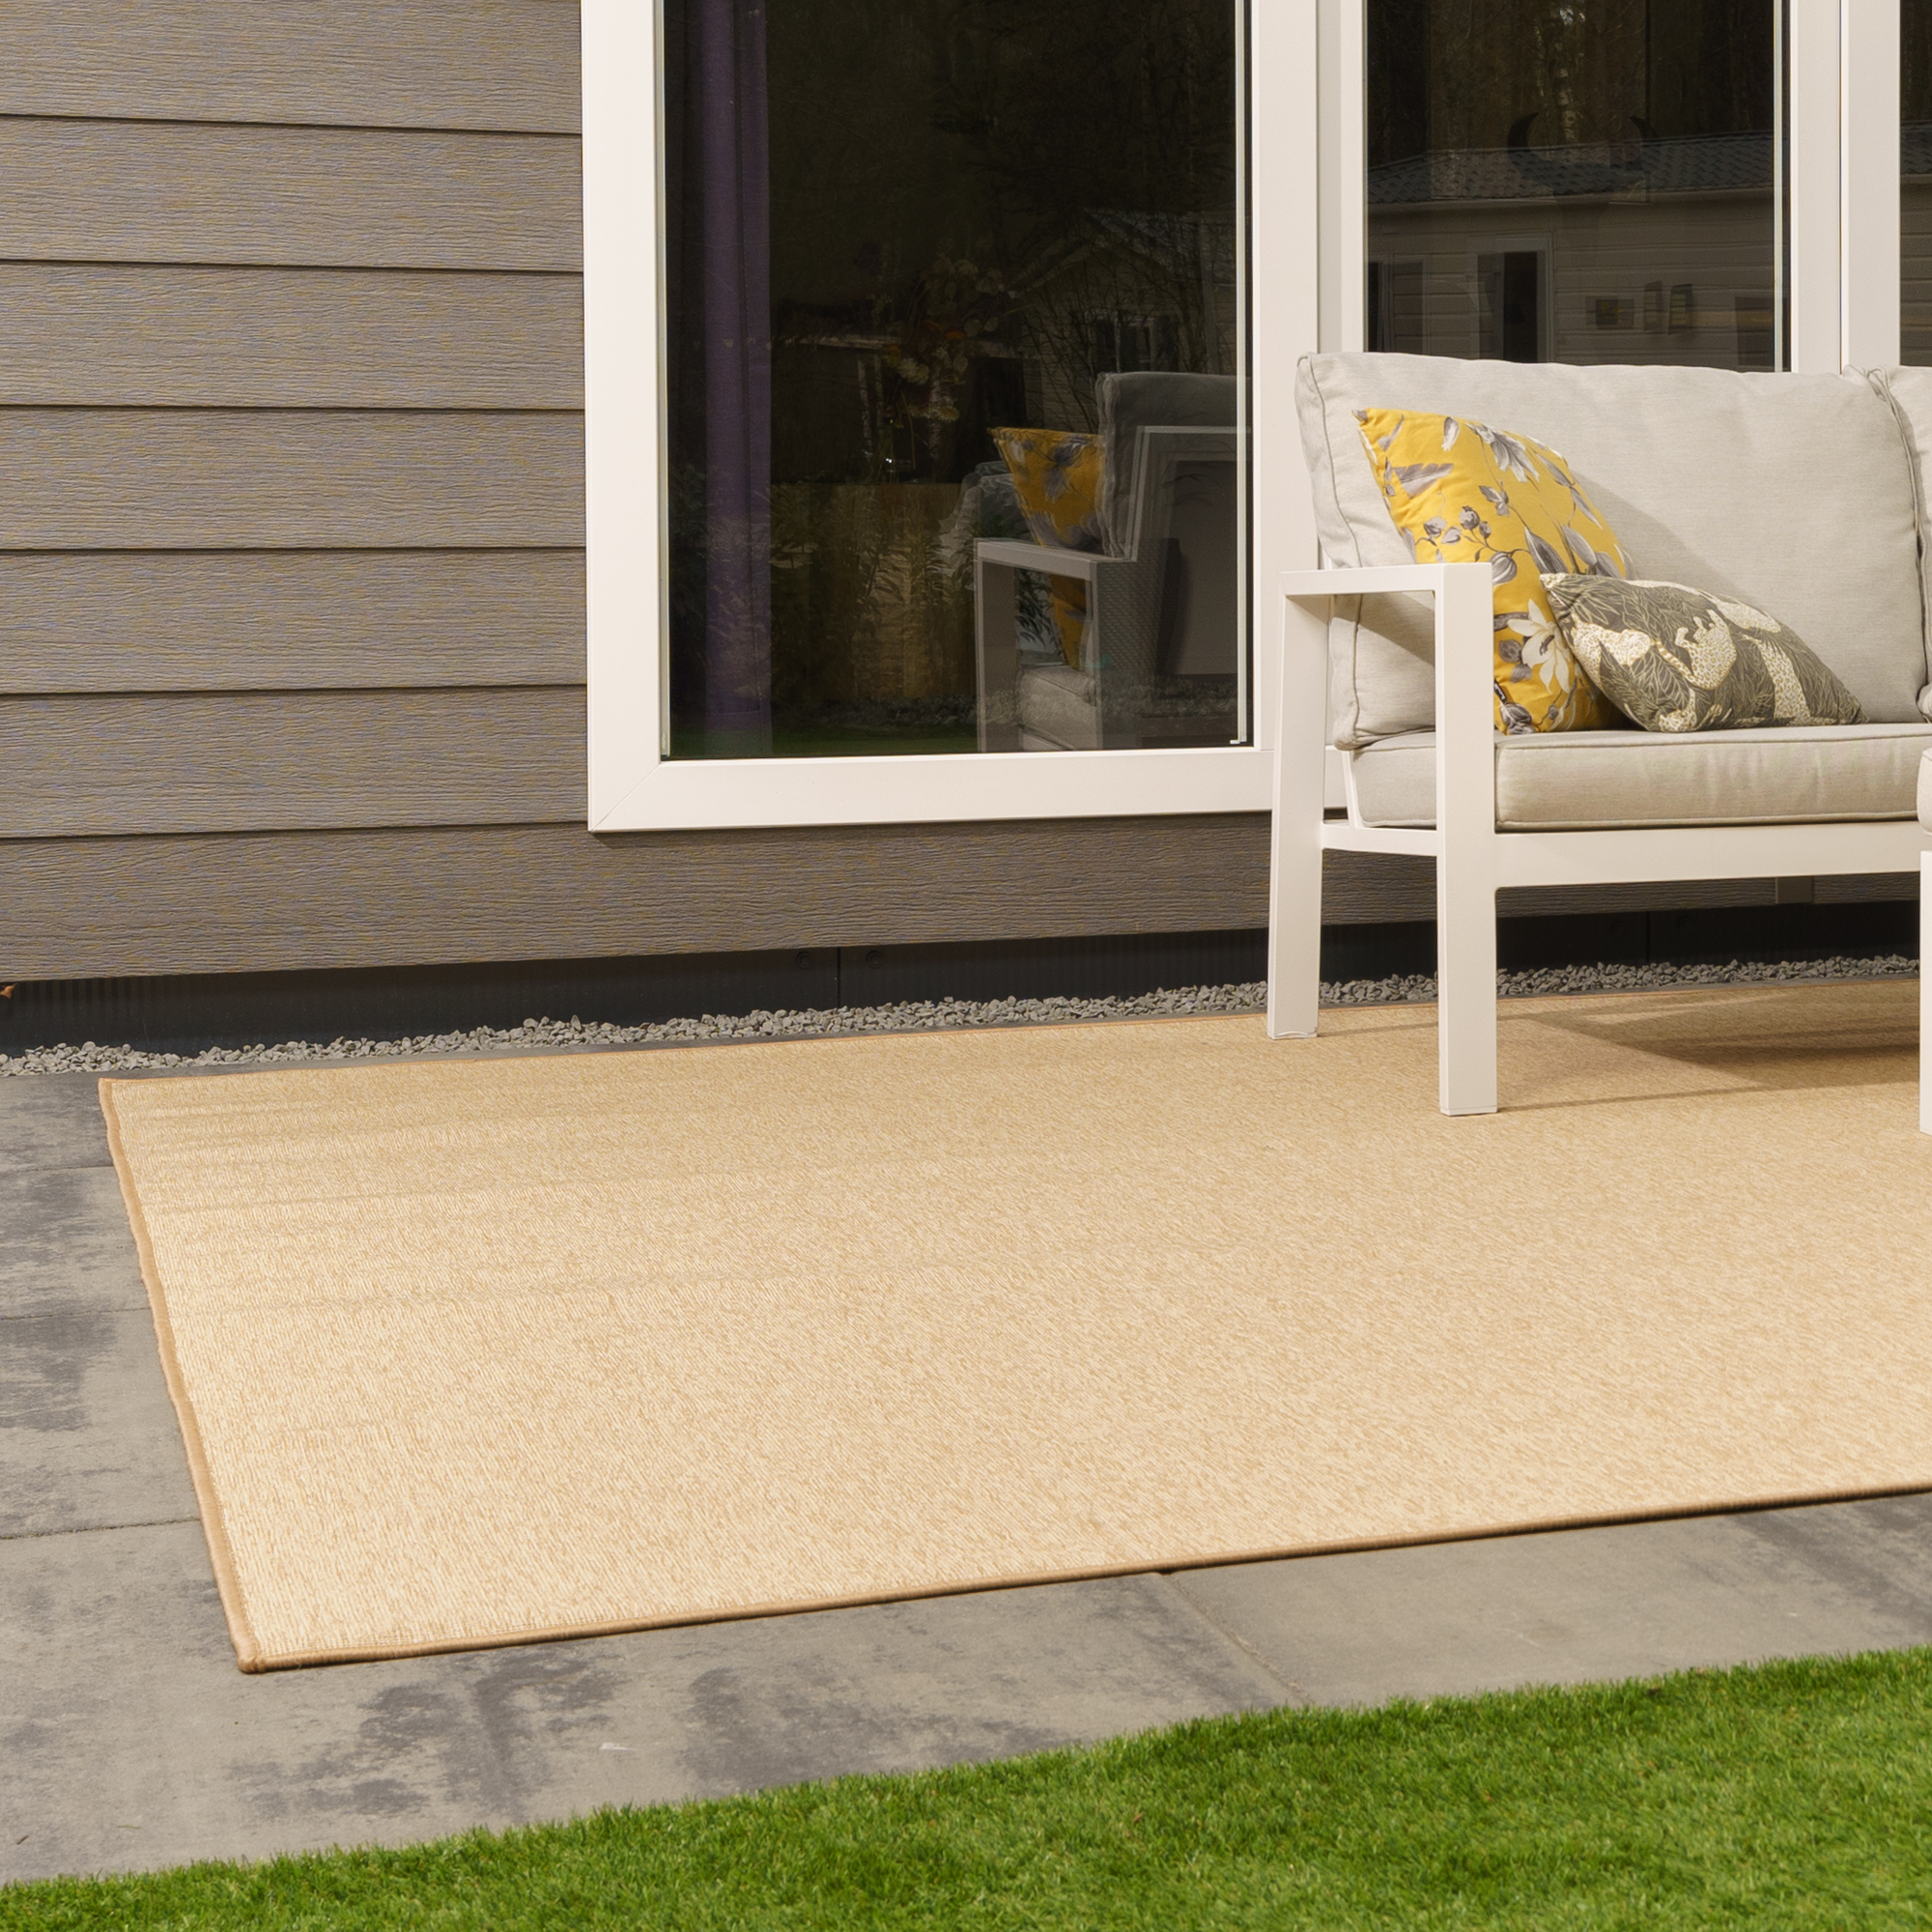 Vloerkleed Xilento Outdoor 4506-26